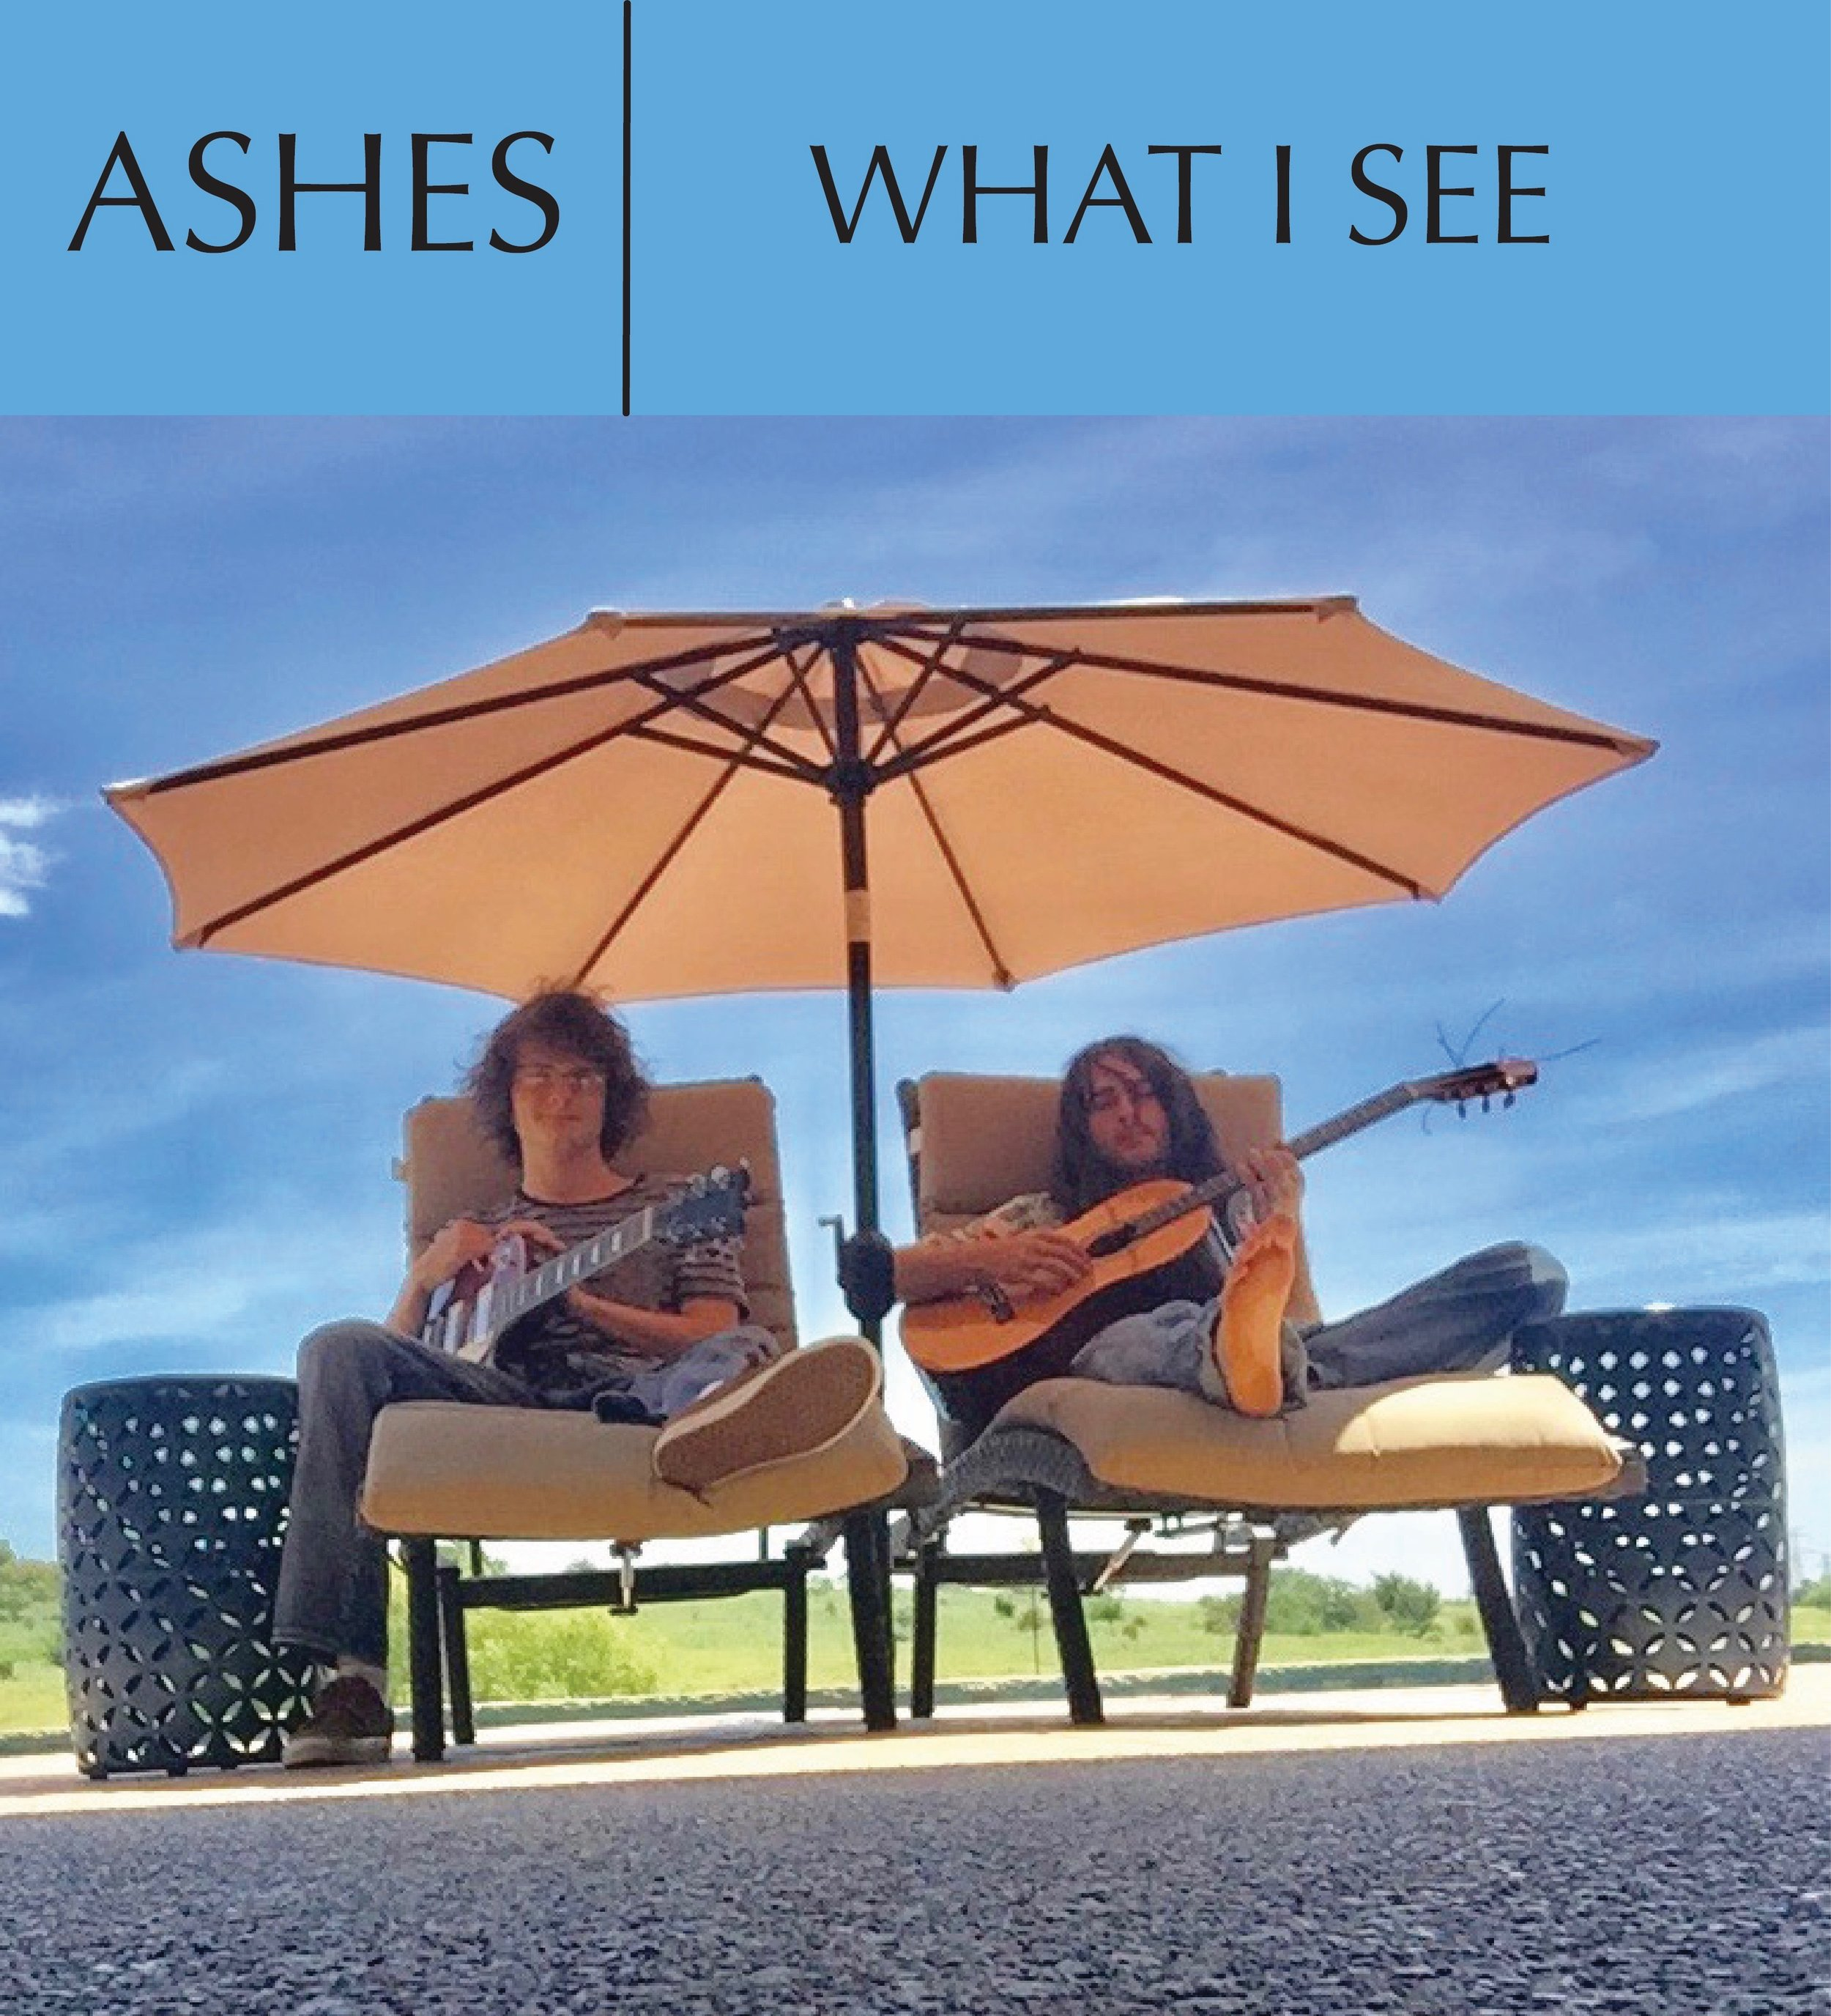 Title: What I See  Ashes Second Single  Released: July 31, 2017  A vocal track accompanied by classic Ashes instrumental backing.